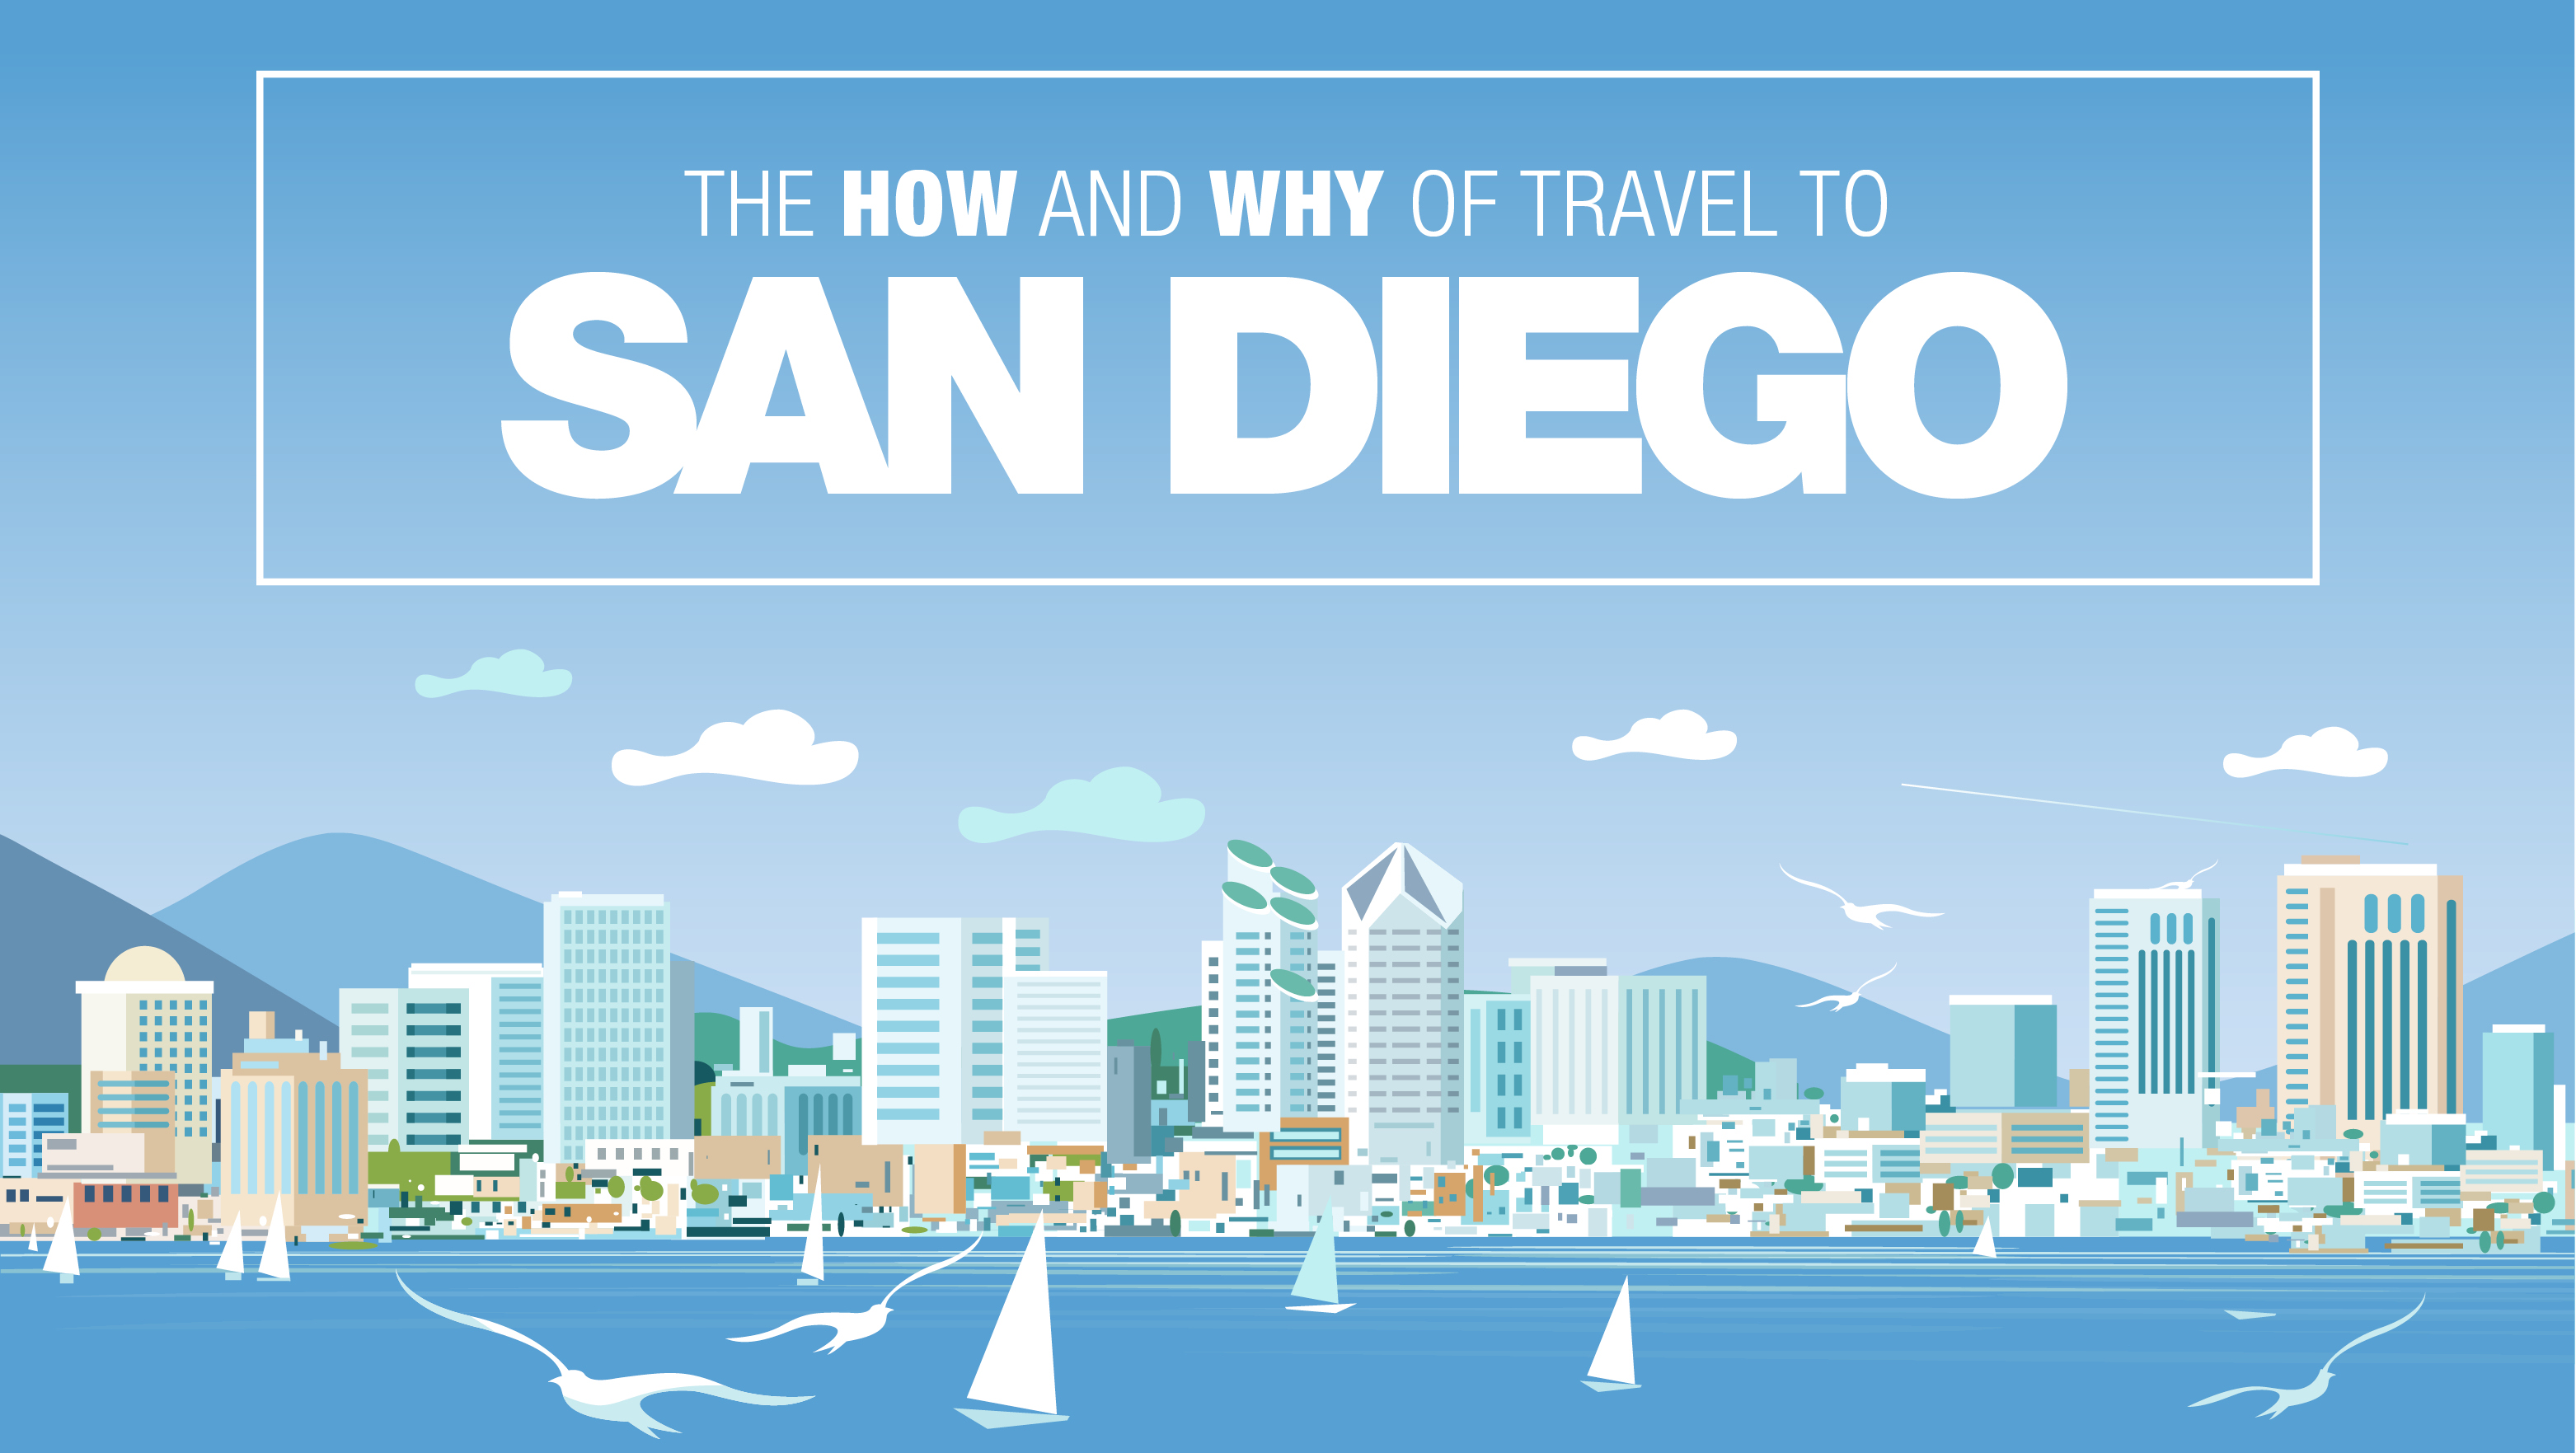 """The How and Why of Travel to San Diego"" with San Diego skyline graphic"